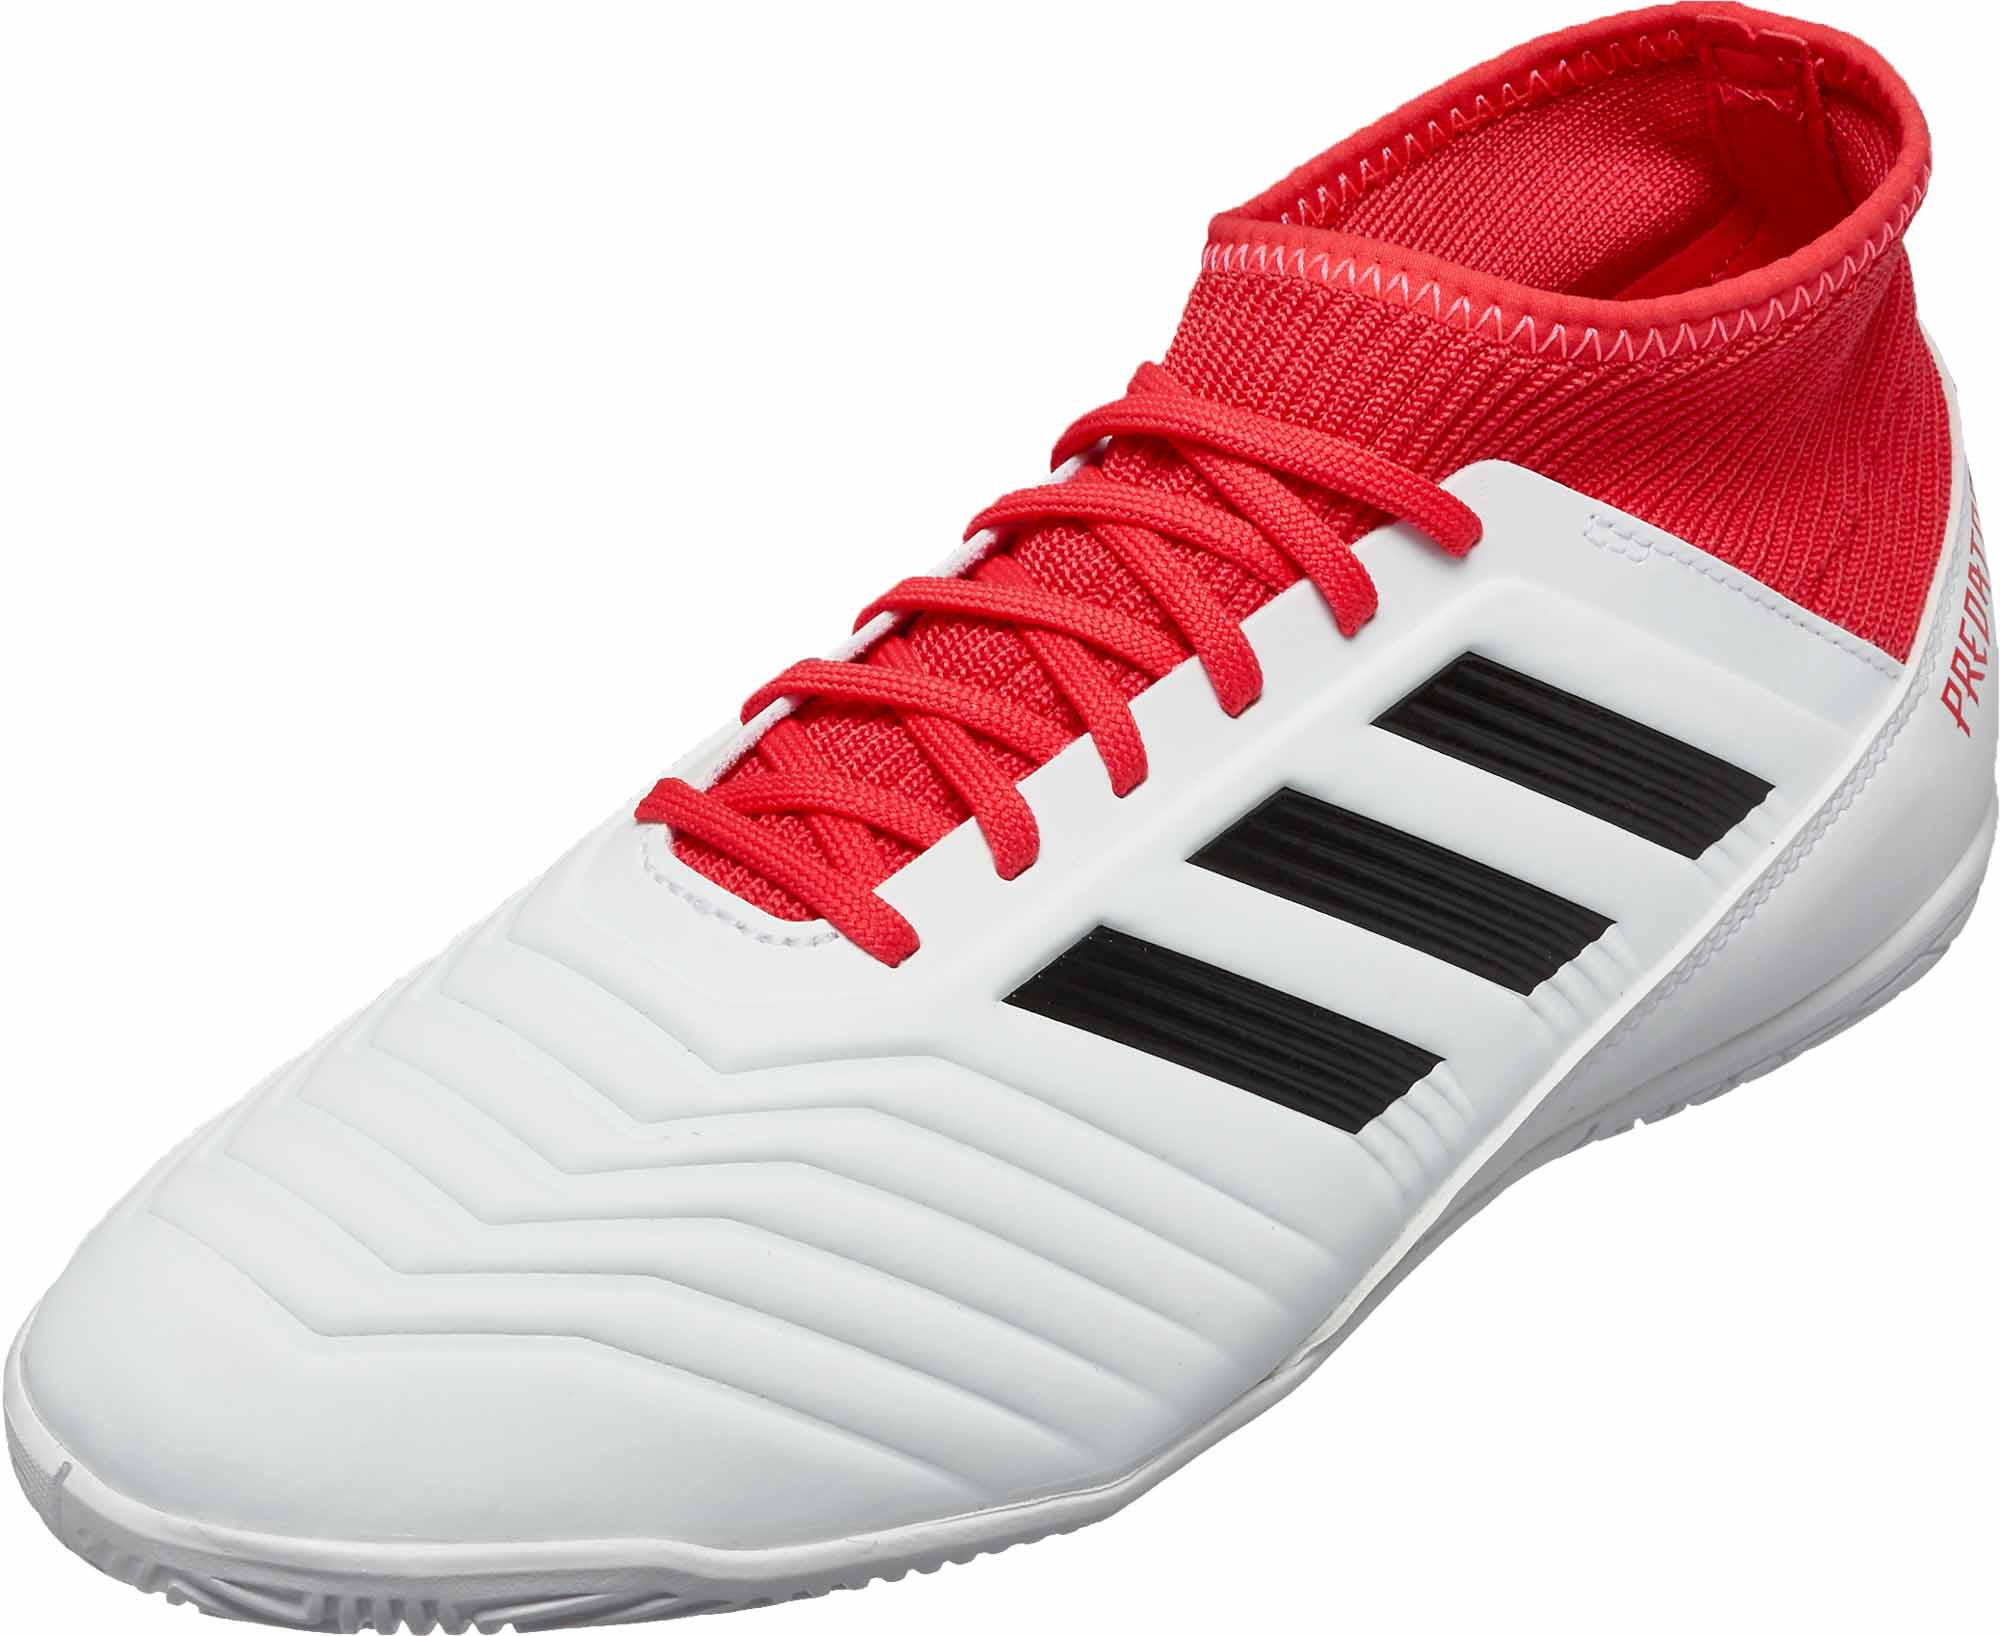 ... best adidas kids predator tango 18.3 in white real coral 8c631 25440 ... 78d4d65f3